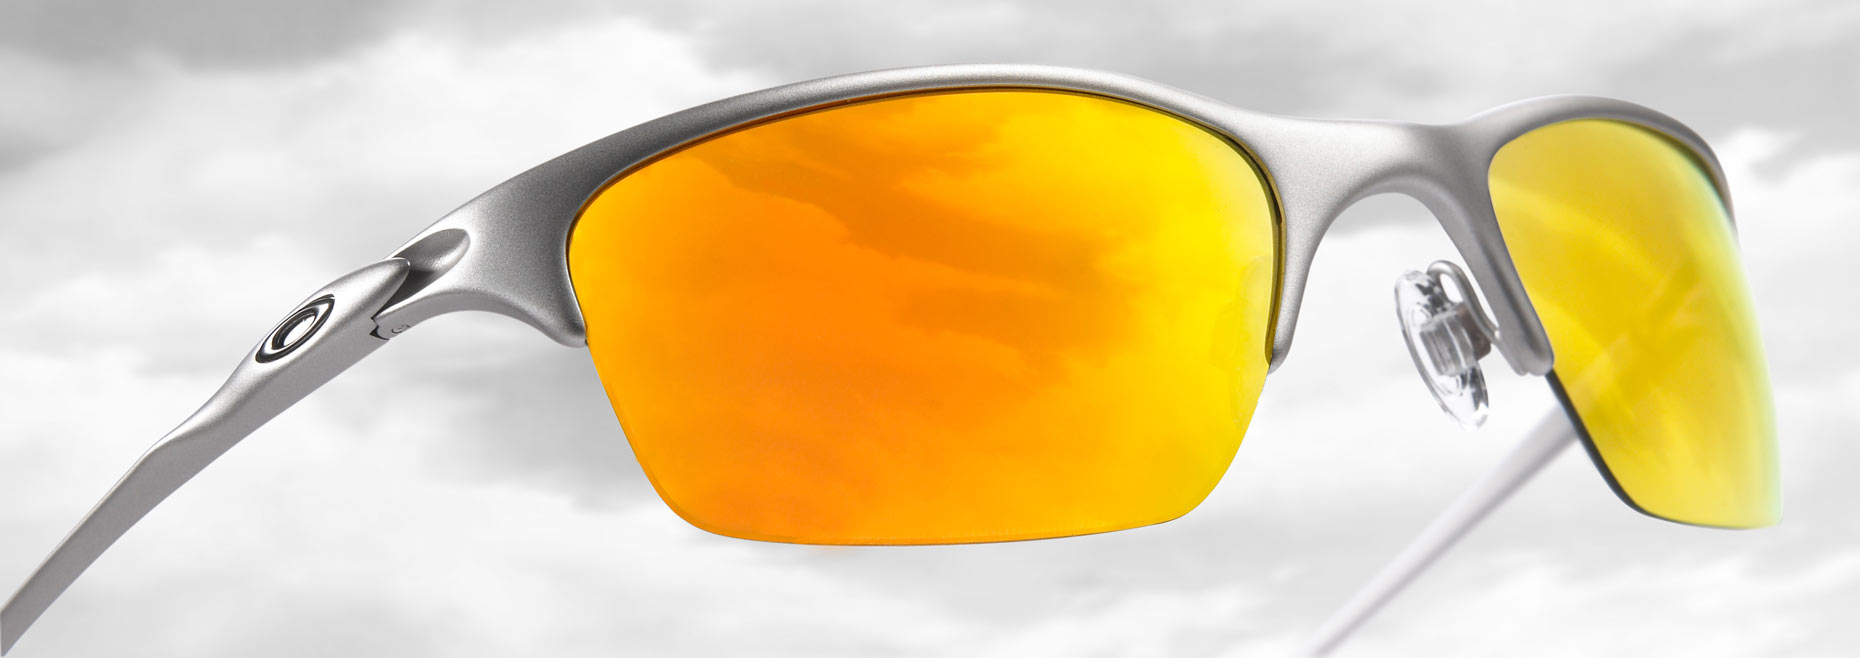 Oakley/yellow shades/sky reflection/product photography